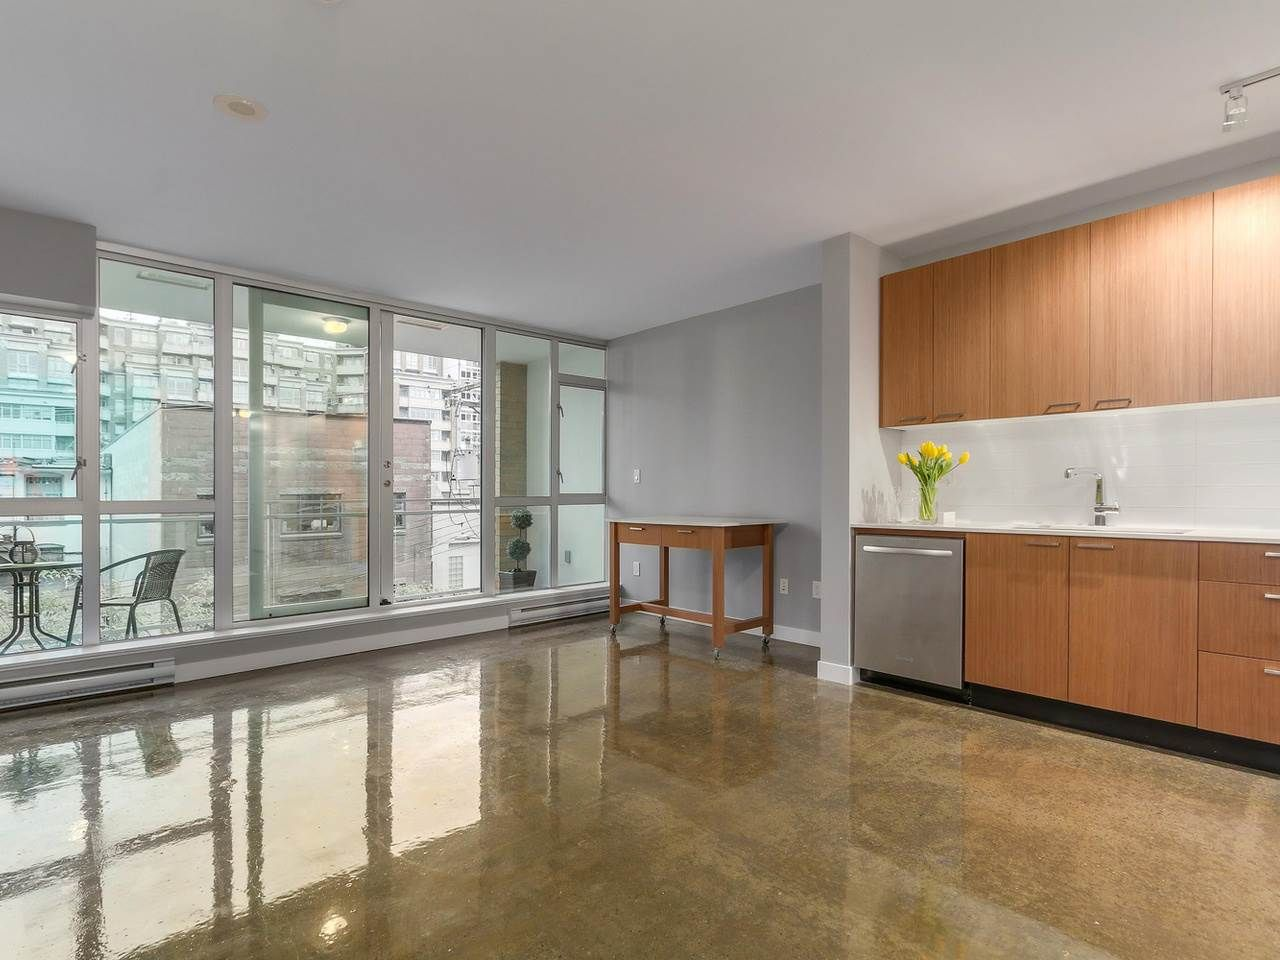 Main Photo: 409 221 UNION STREET in Vancouver: Mount Pleasant VE Condo for sale (Vancouver East)  : MLS®# R2119480